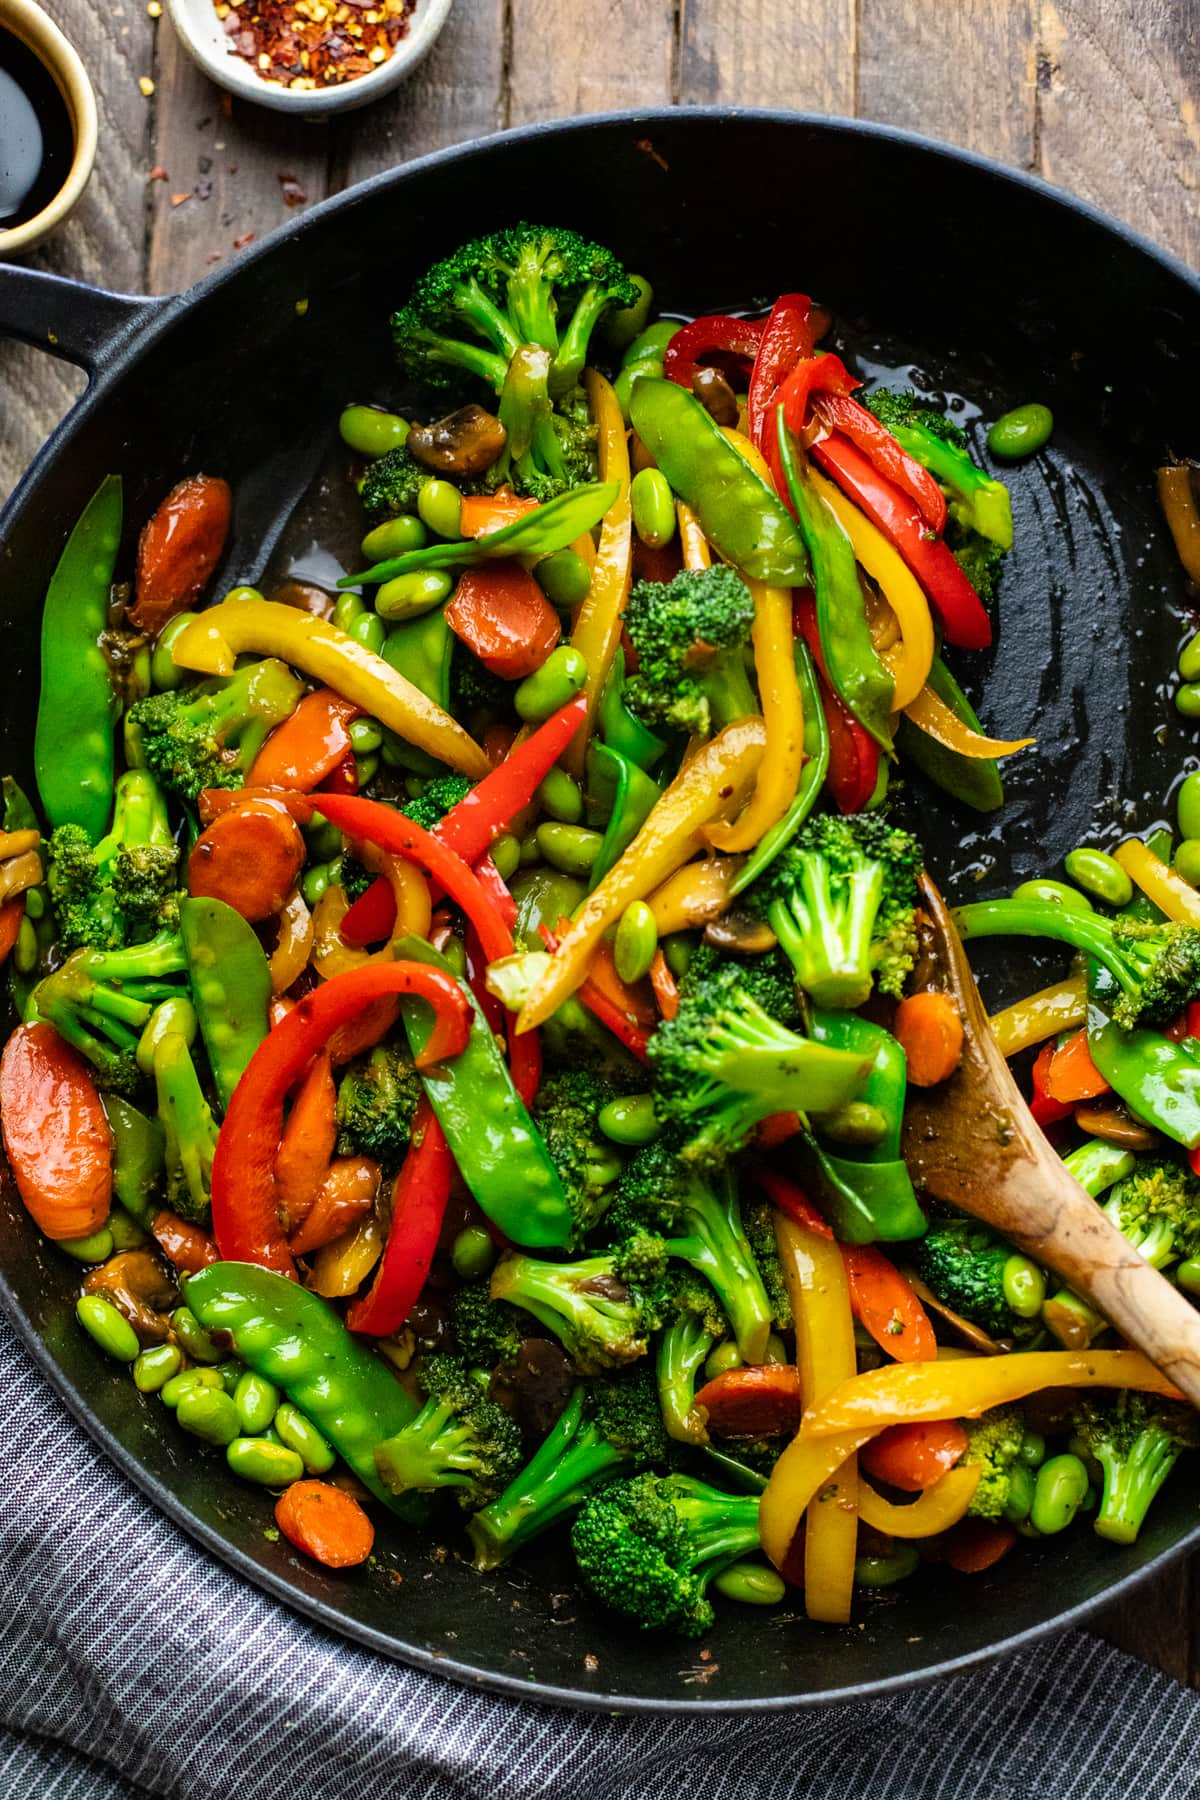 spoon mixing stir fry vegetables in cast iron pan on brown wooden board.